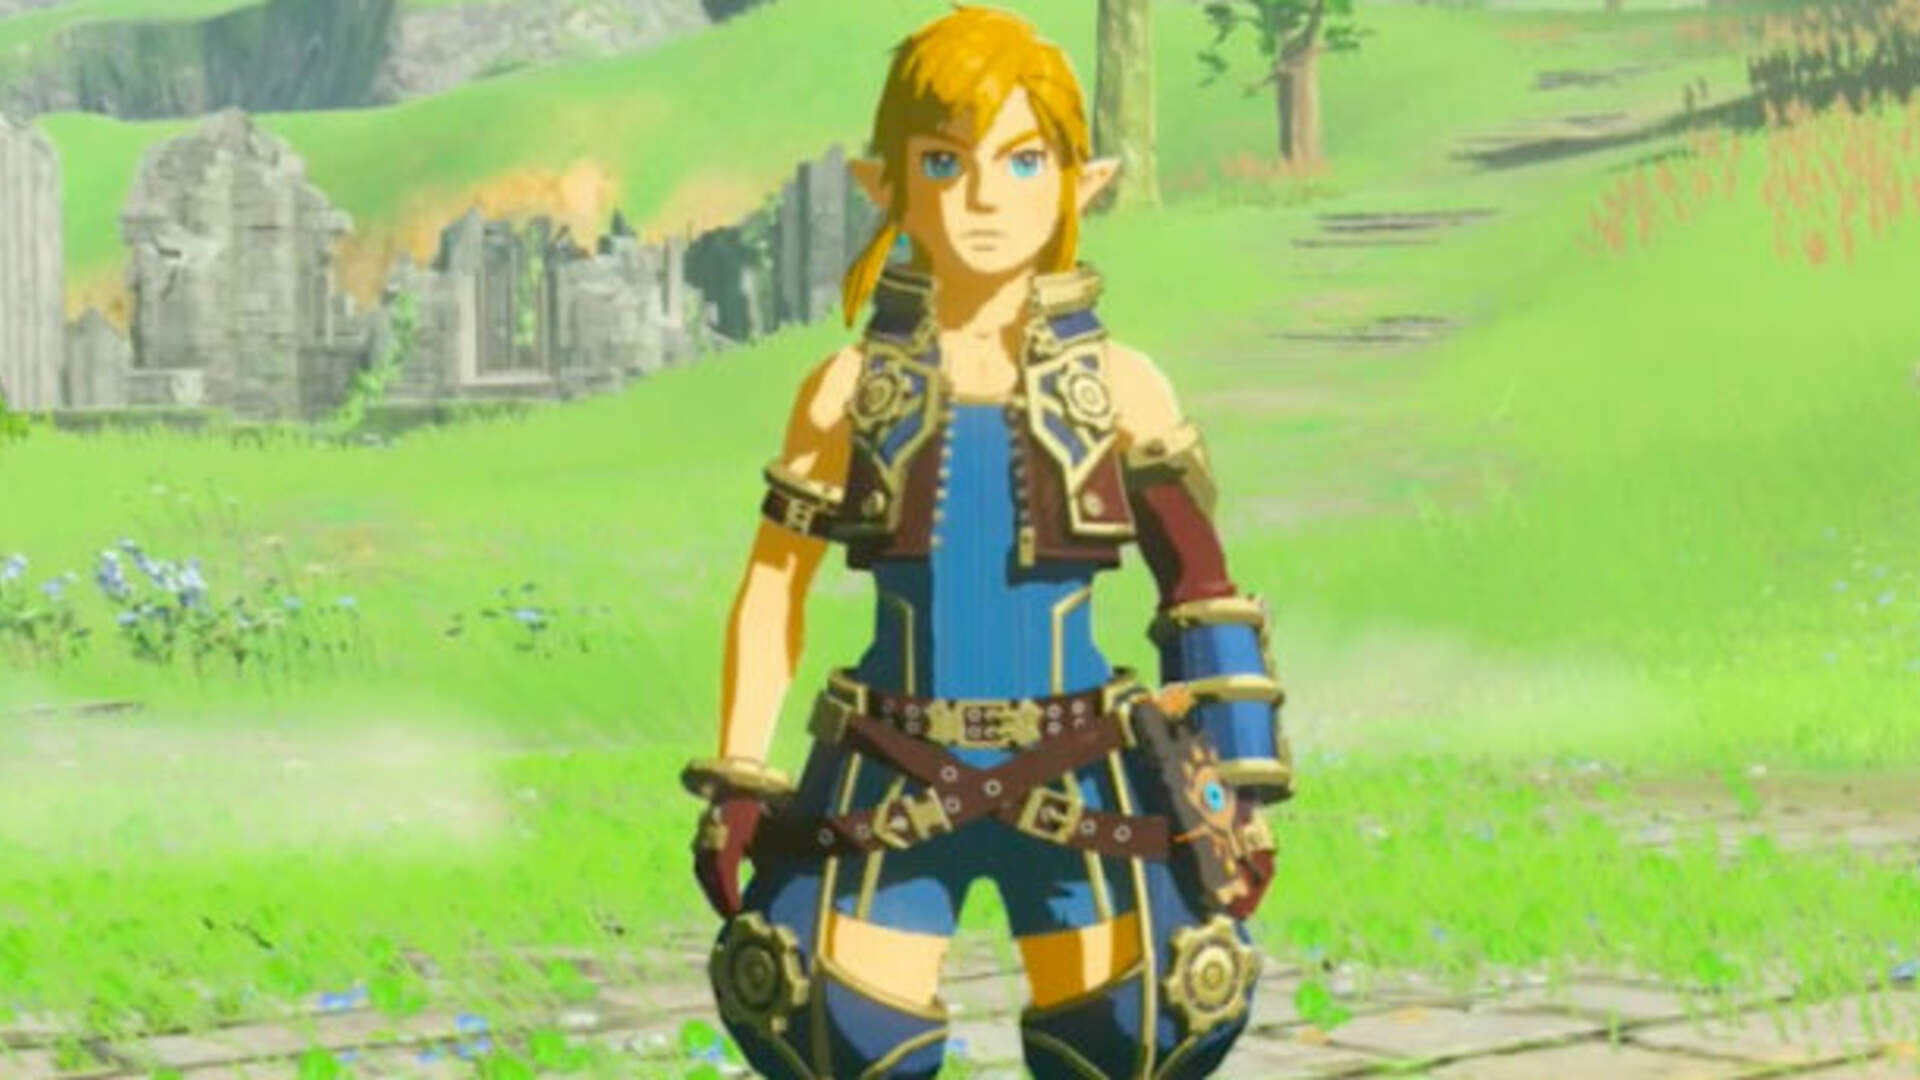 Xenoblade Chronicles 2 Direct Presentation Reveals DLC, Relevant Costume for Link in Breath of the Wild